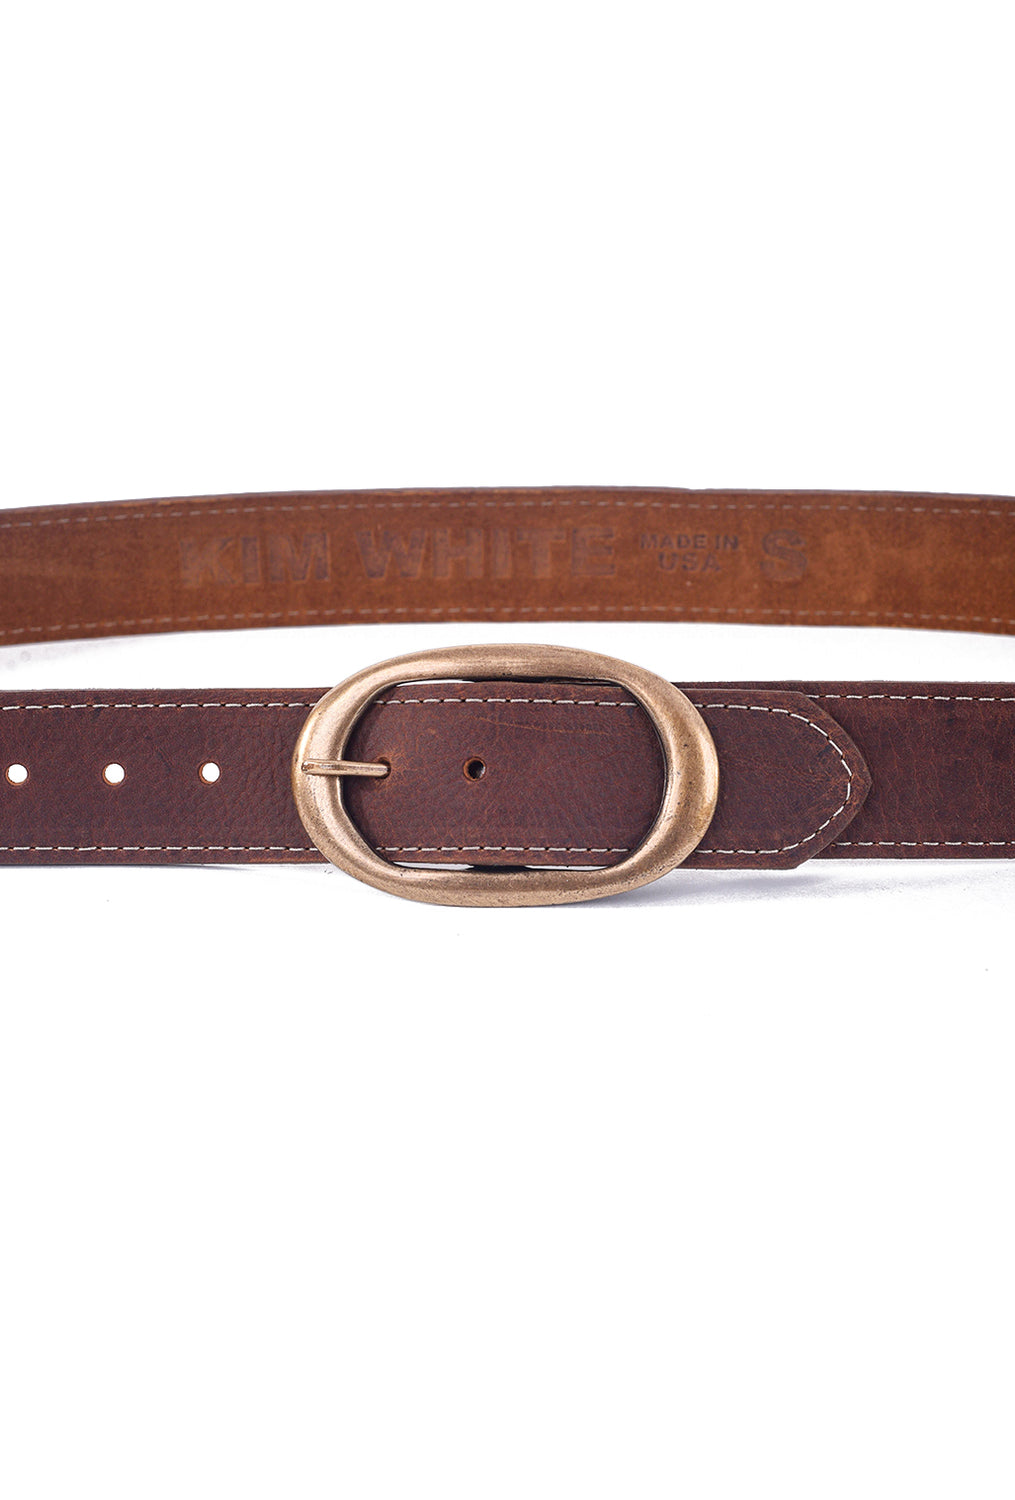 Kim White Oval Classic Belt, Rusty Brown